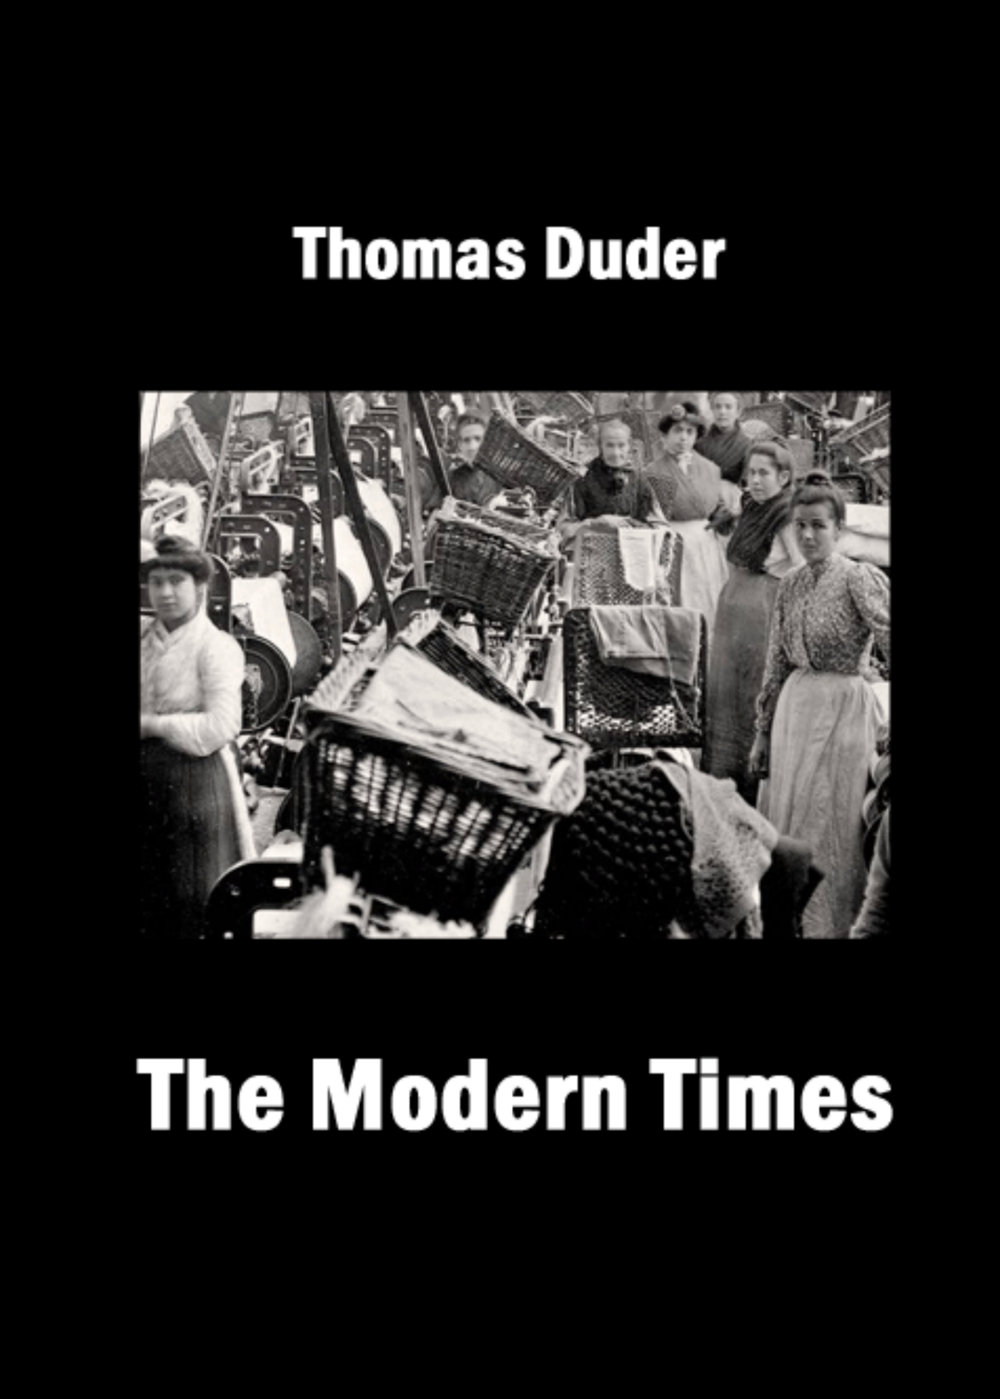 the modern times cover resized.jpg